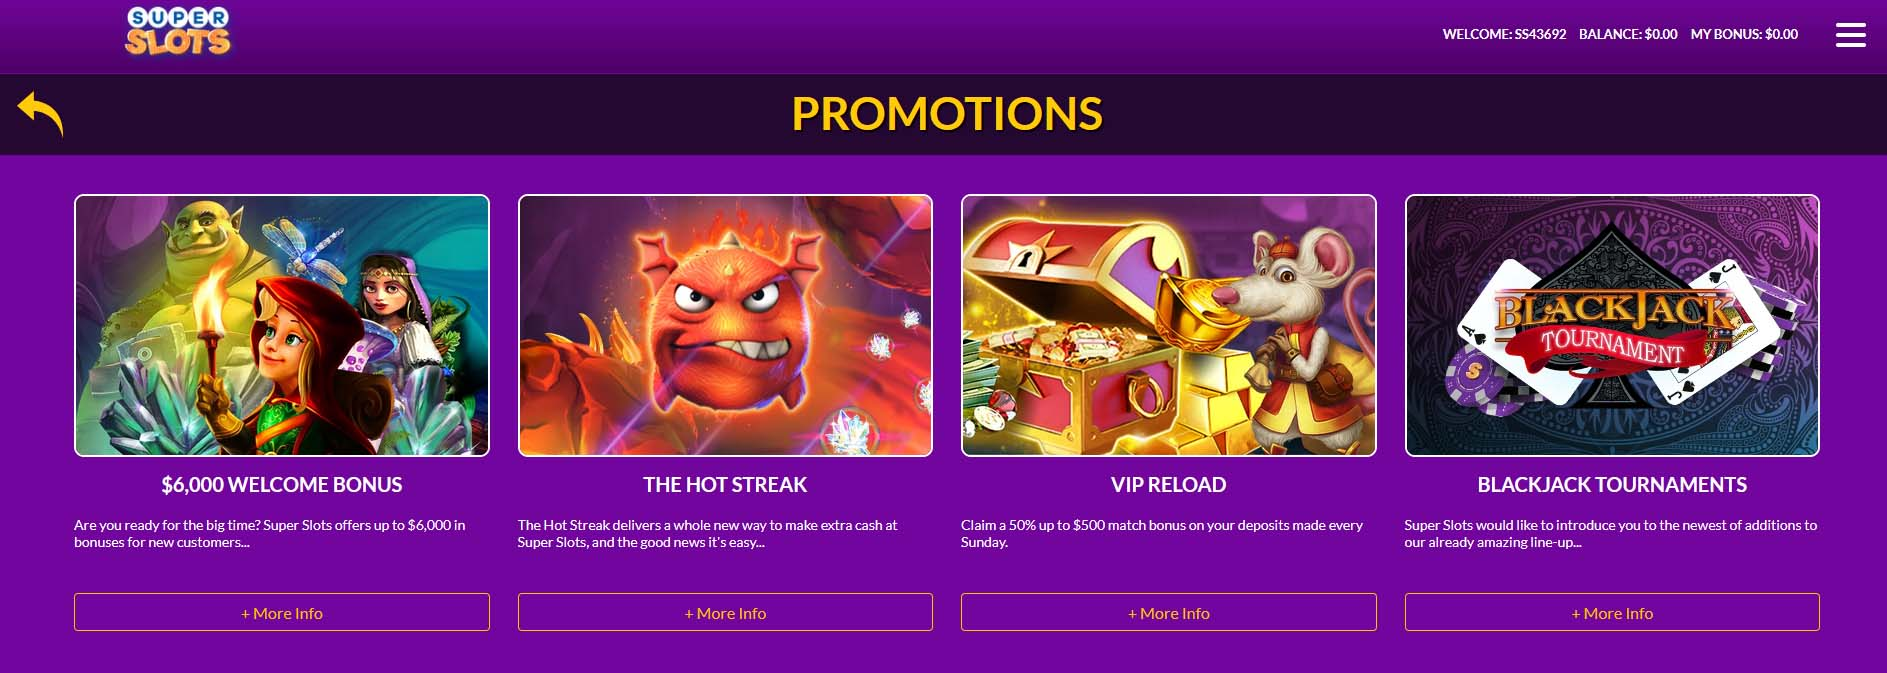 Super Slots Online Casino Promotions